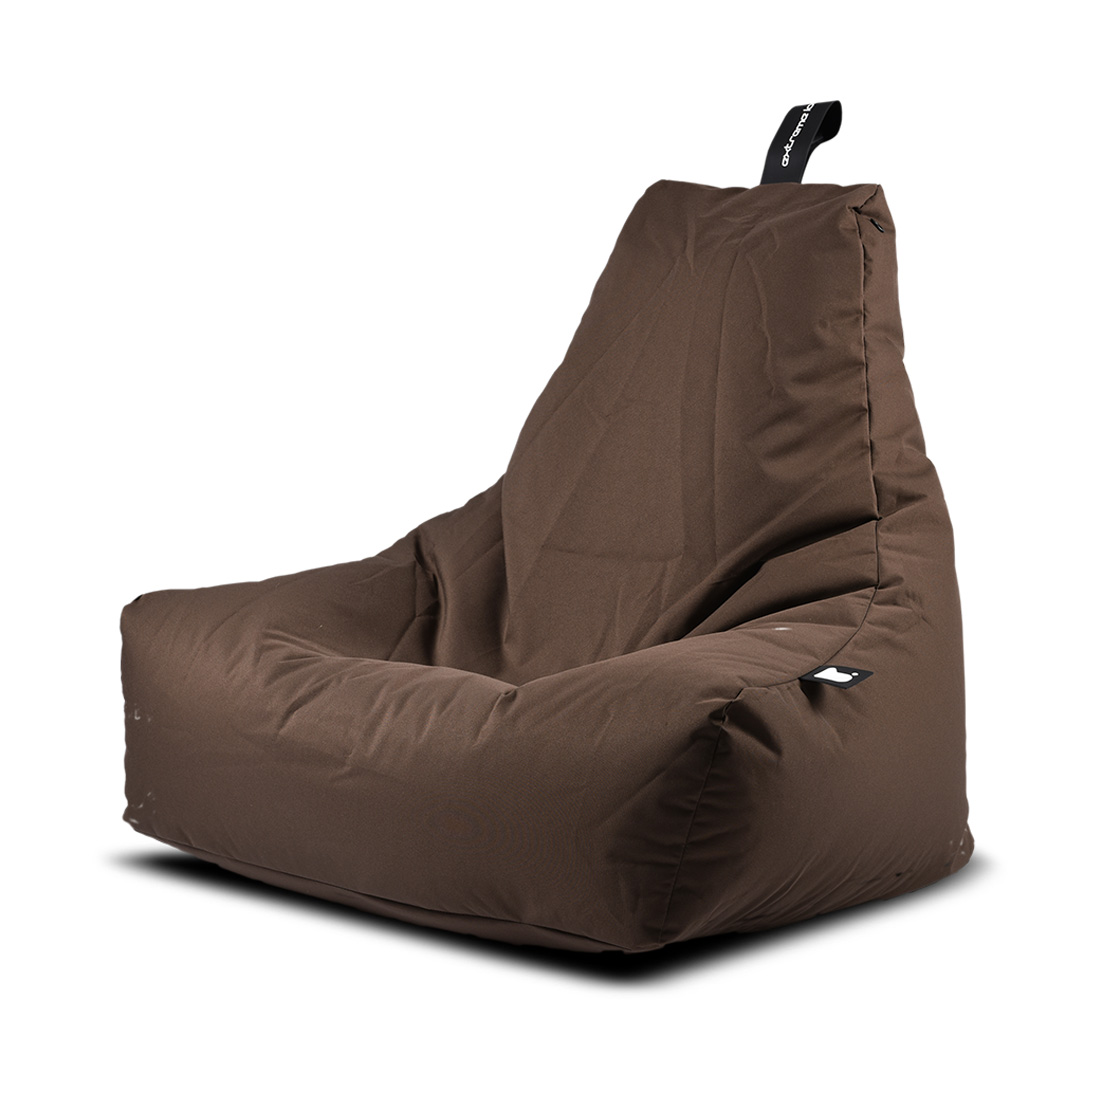 MIGHTY OUTDOOR BEAN BAG - BROWN